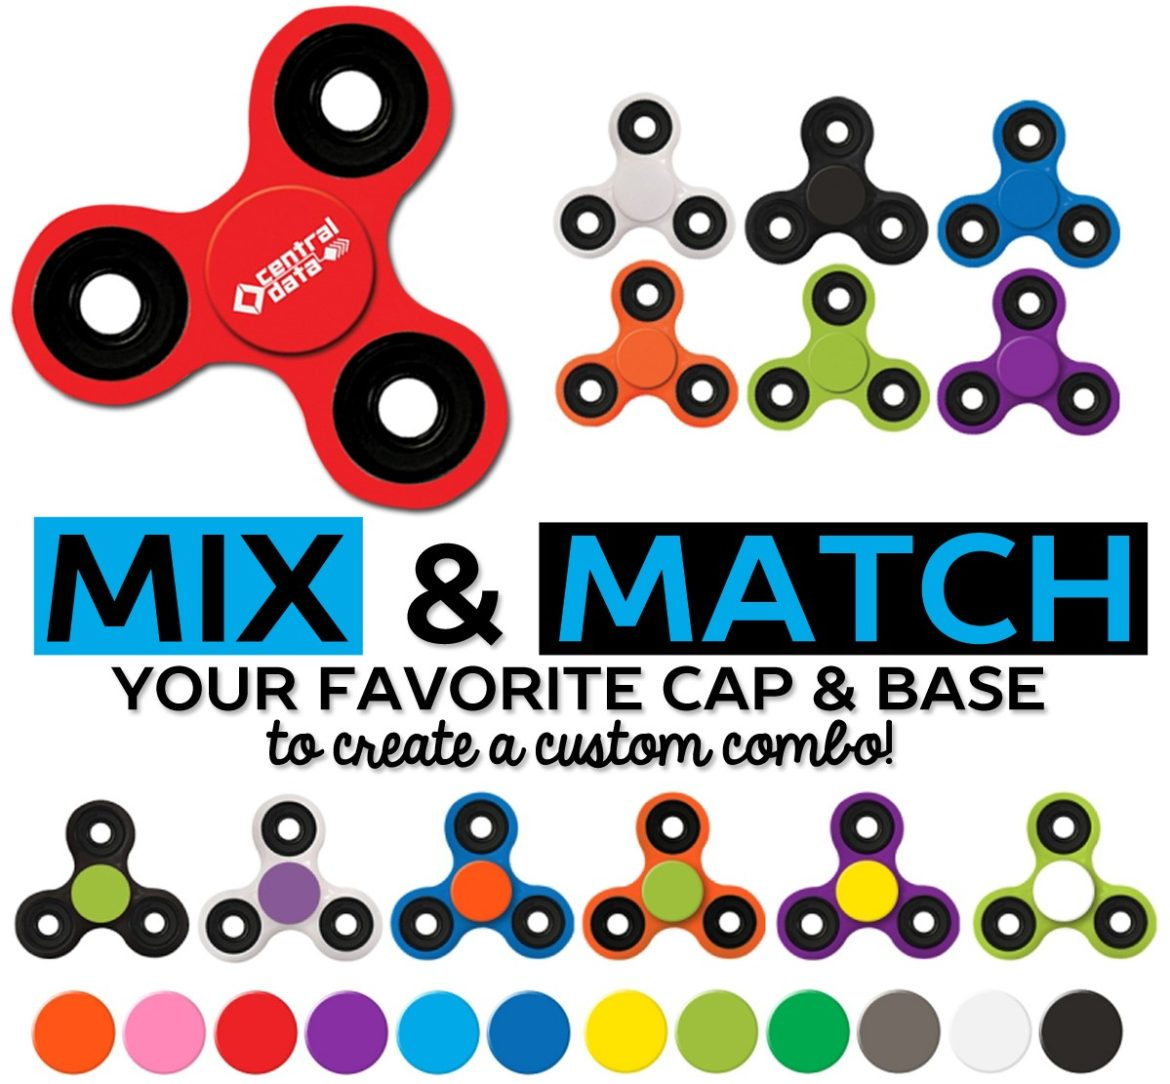 Captiv8 Supply The Trendy Product That Has Taken Industry By Storm Fidget Spinner Now Allows You To Mix And Match Colors For Both Base